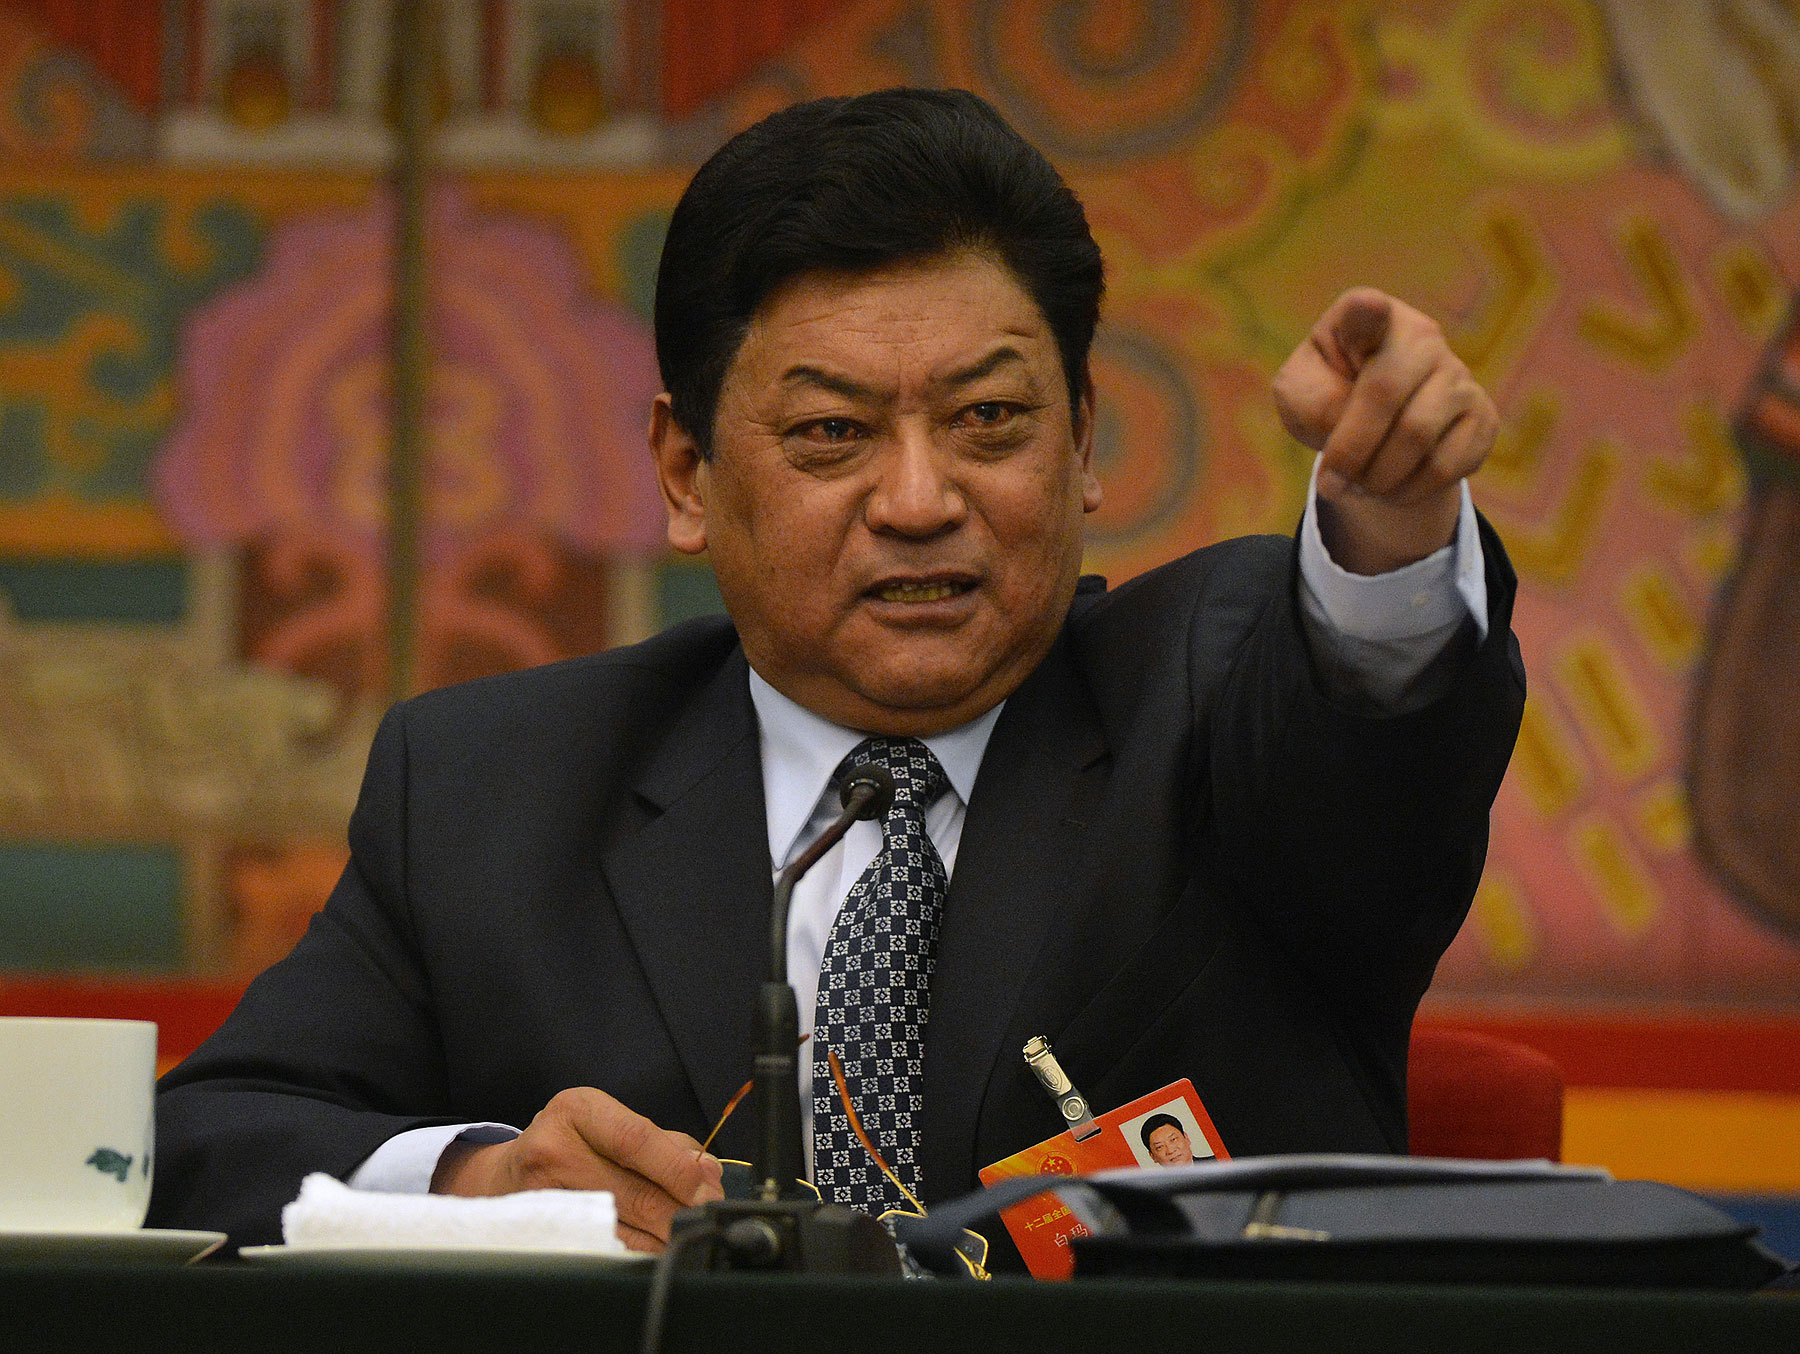 Padma Choling, head of China's Tibet Autonomous Region Congress gestures during their open session in the Great Hall of the people at the National People's Congress in Beijing on March 8, 2013